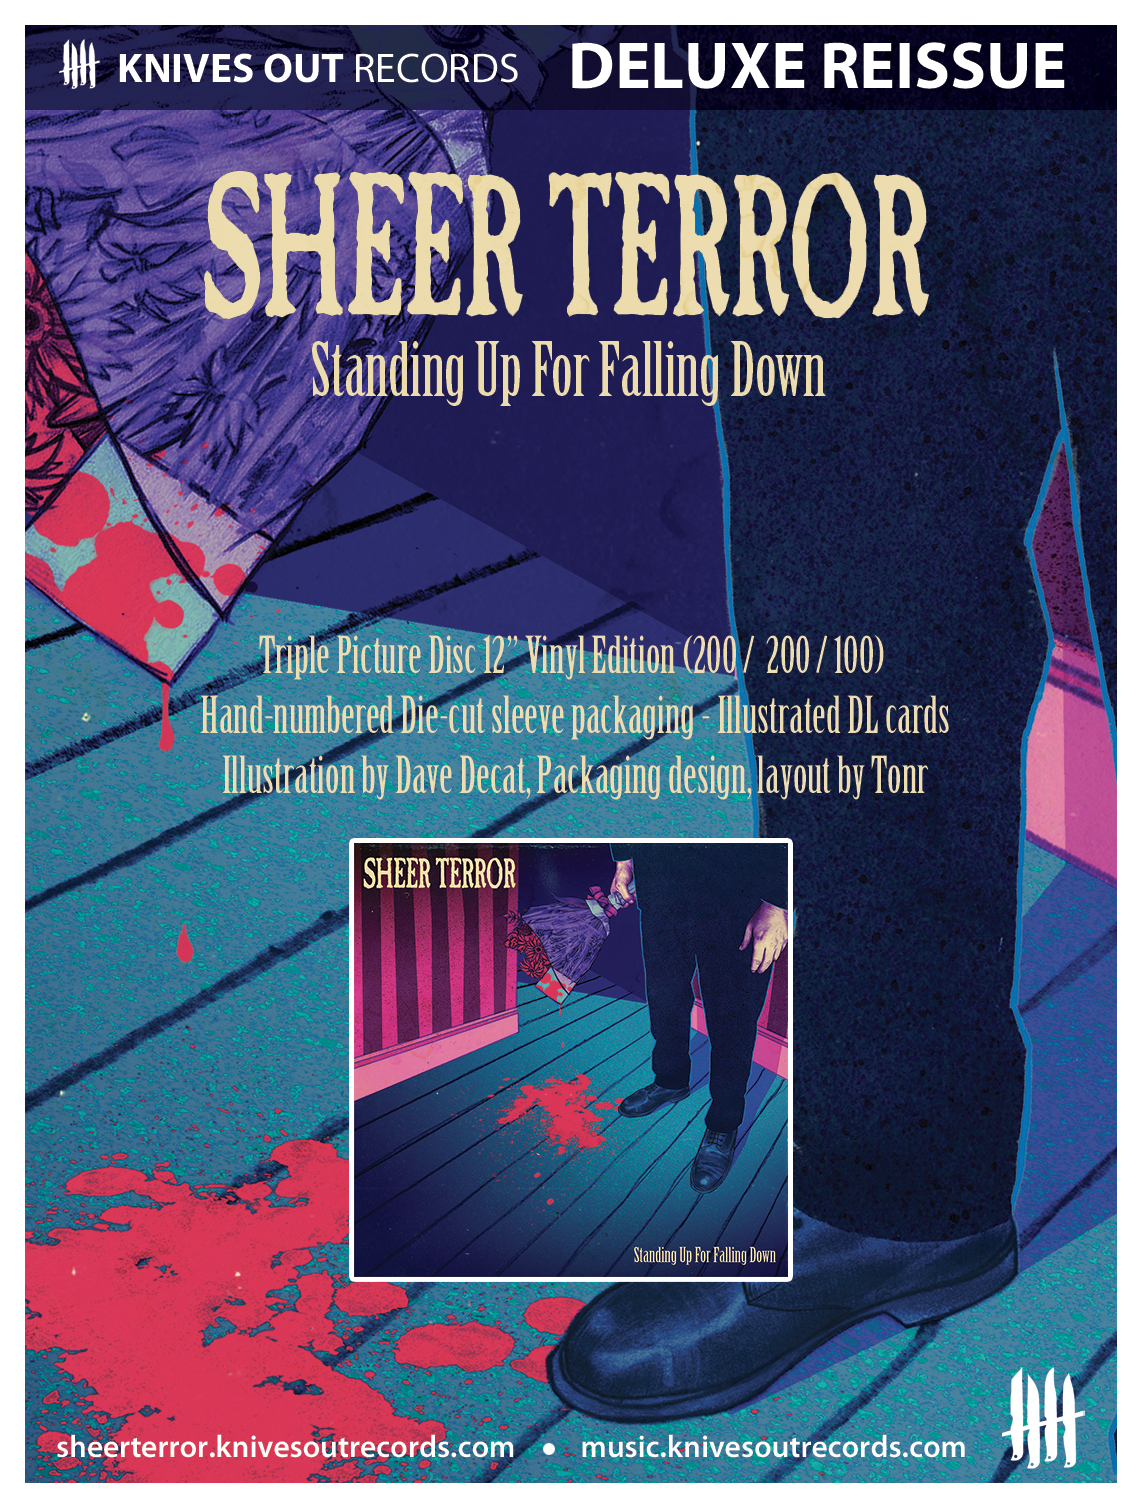 SHEER TERROR Standing Up For Falling Down triple picture disc vinyl edition